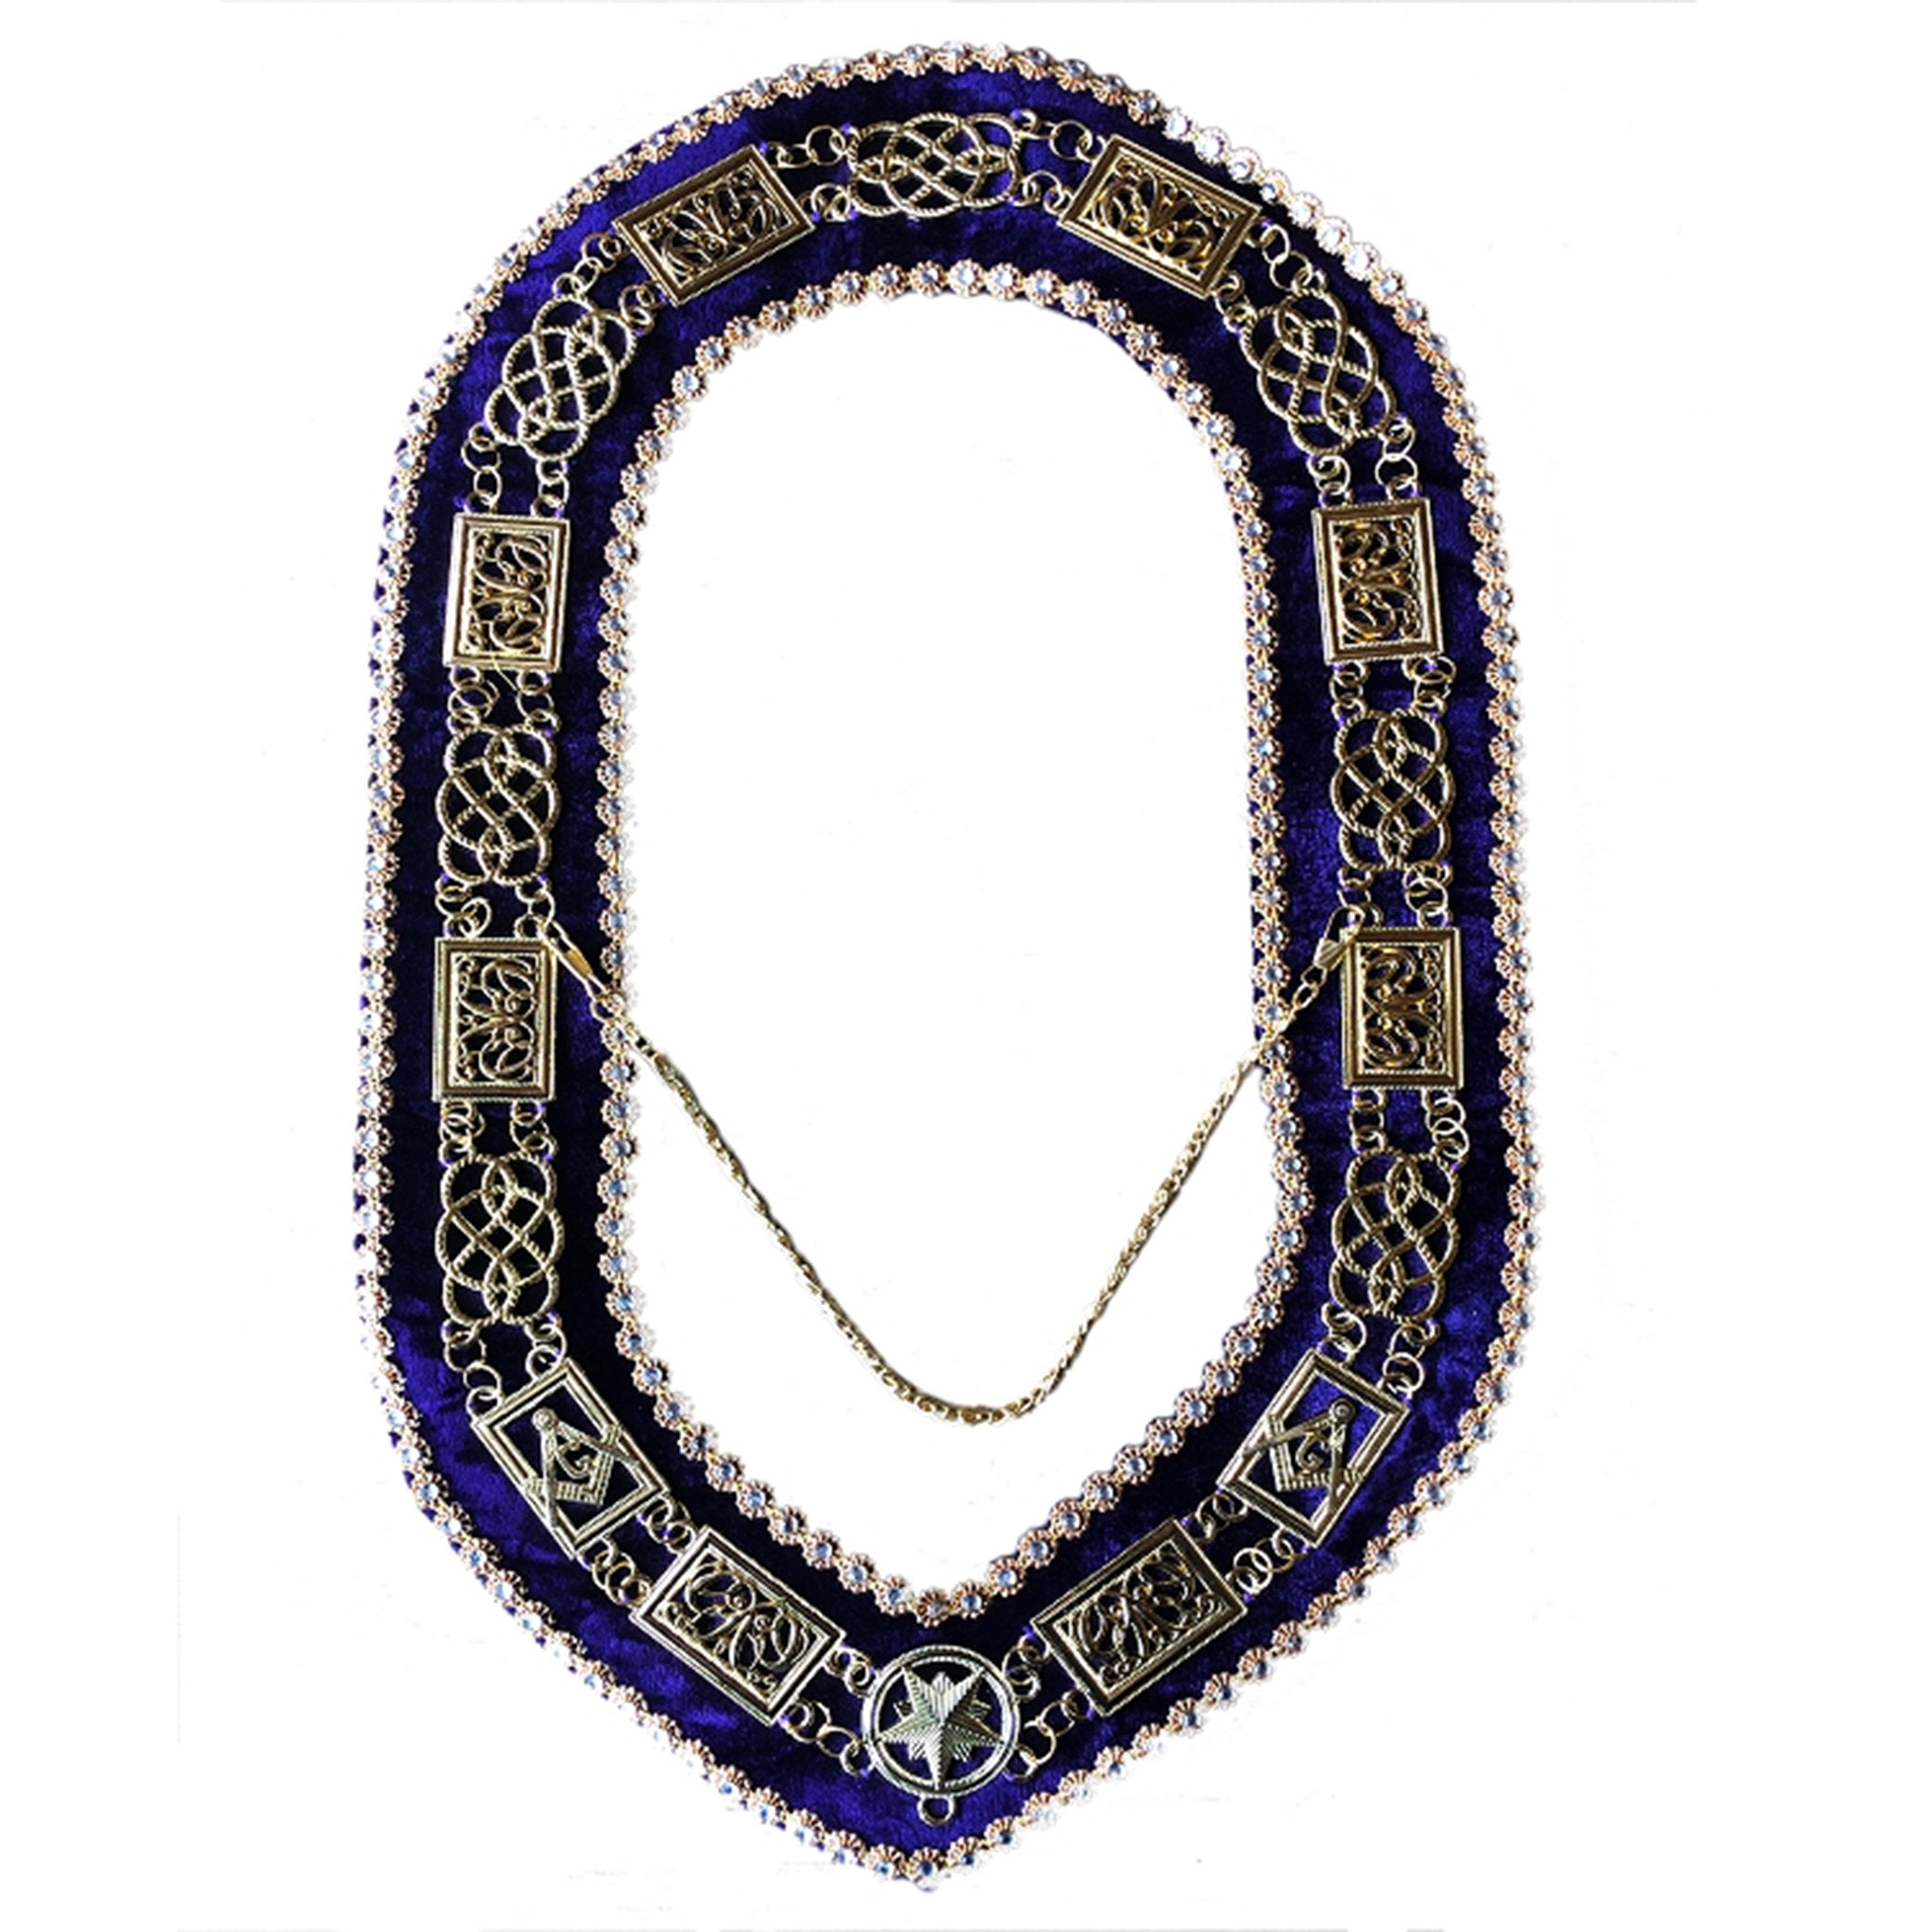 Grand Lodge - Chain Collar with Rhinestones - Gold/Silver on Purple Velvet - Bricks Masons